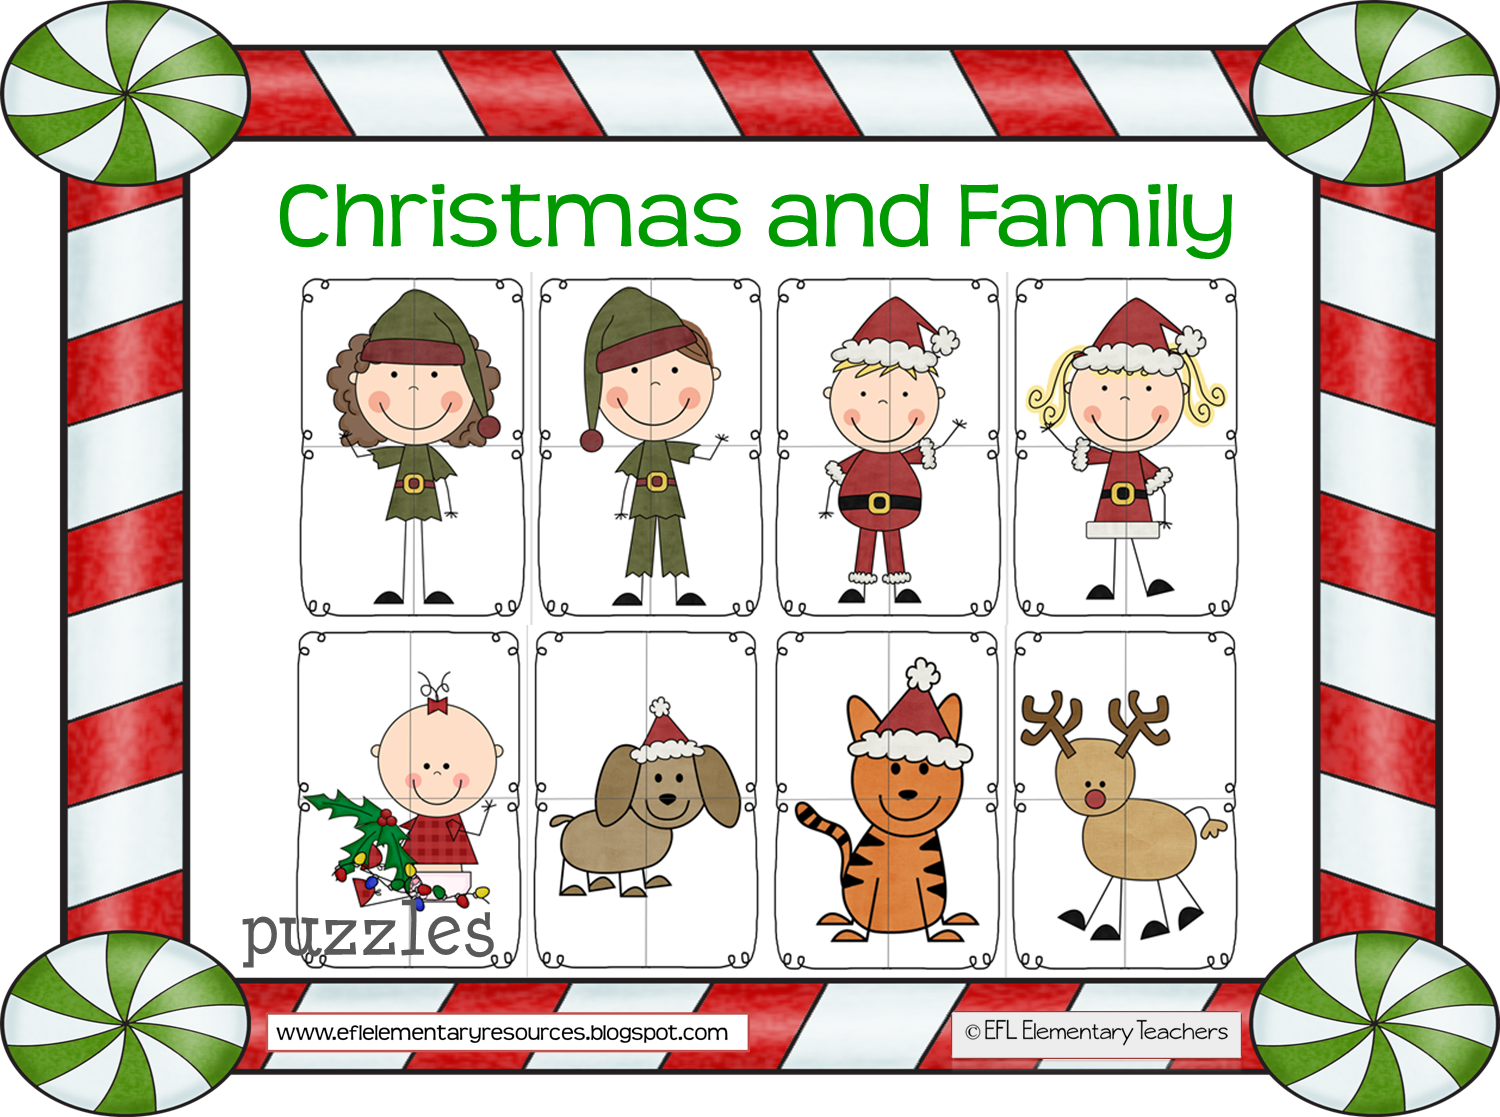 Christmas bingo clipart image free download EFL Elementary Teachers: Christmas and Family Theme image free download